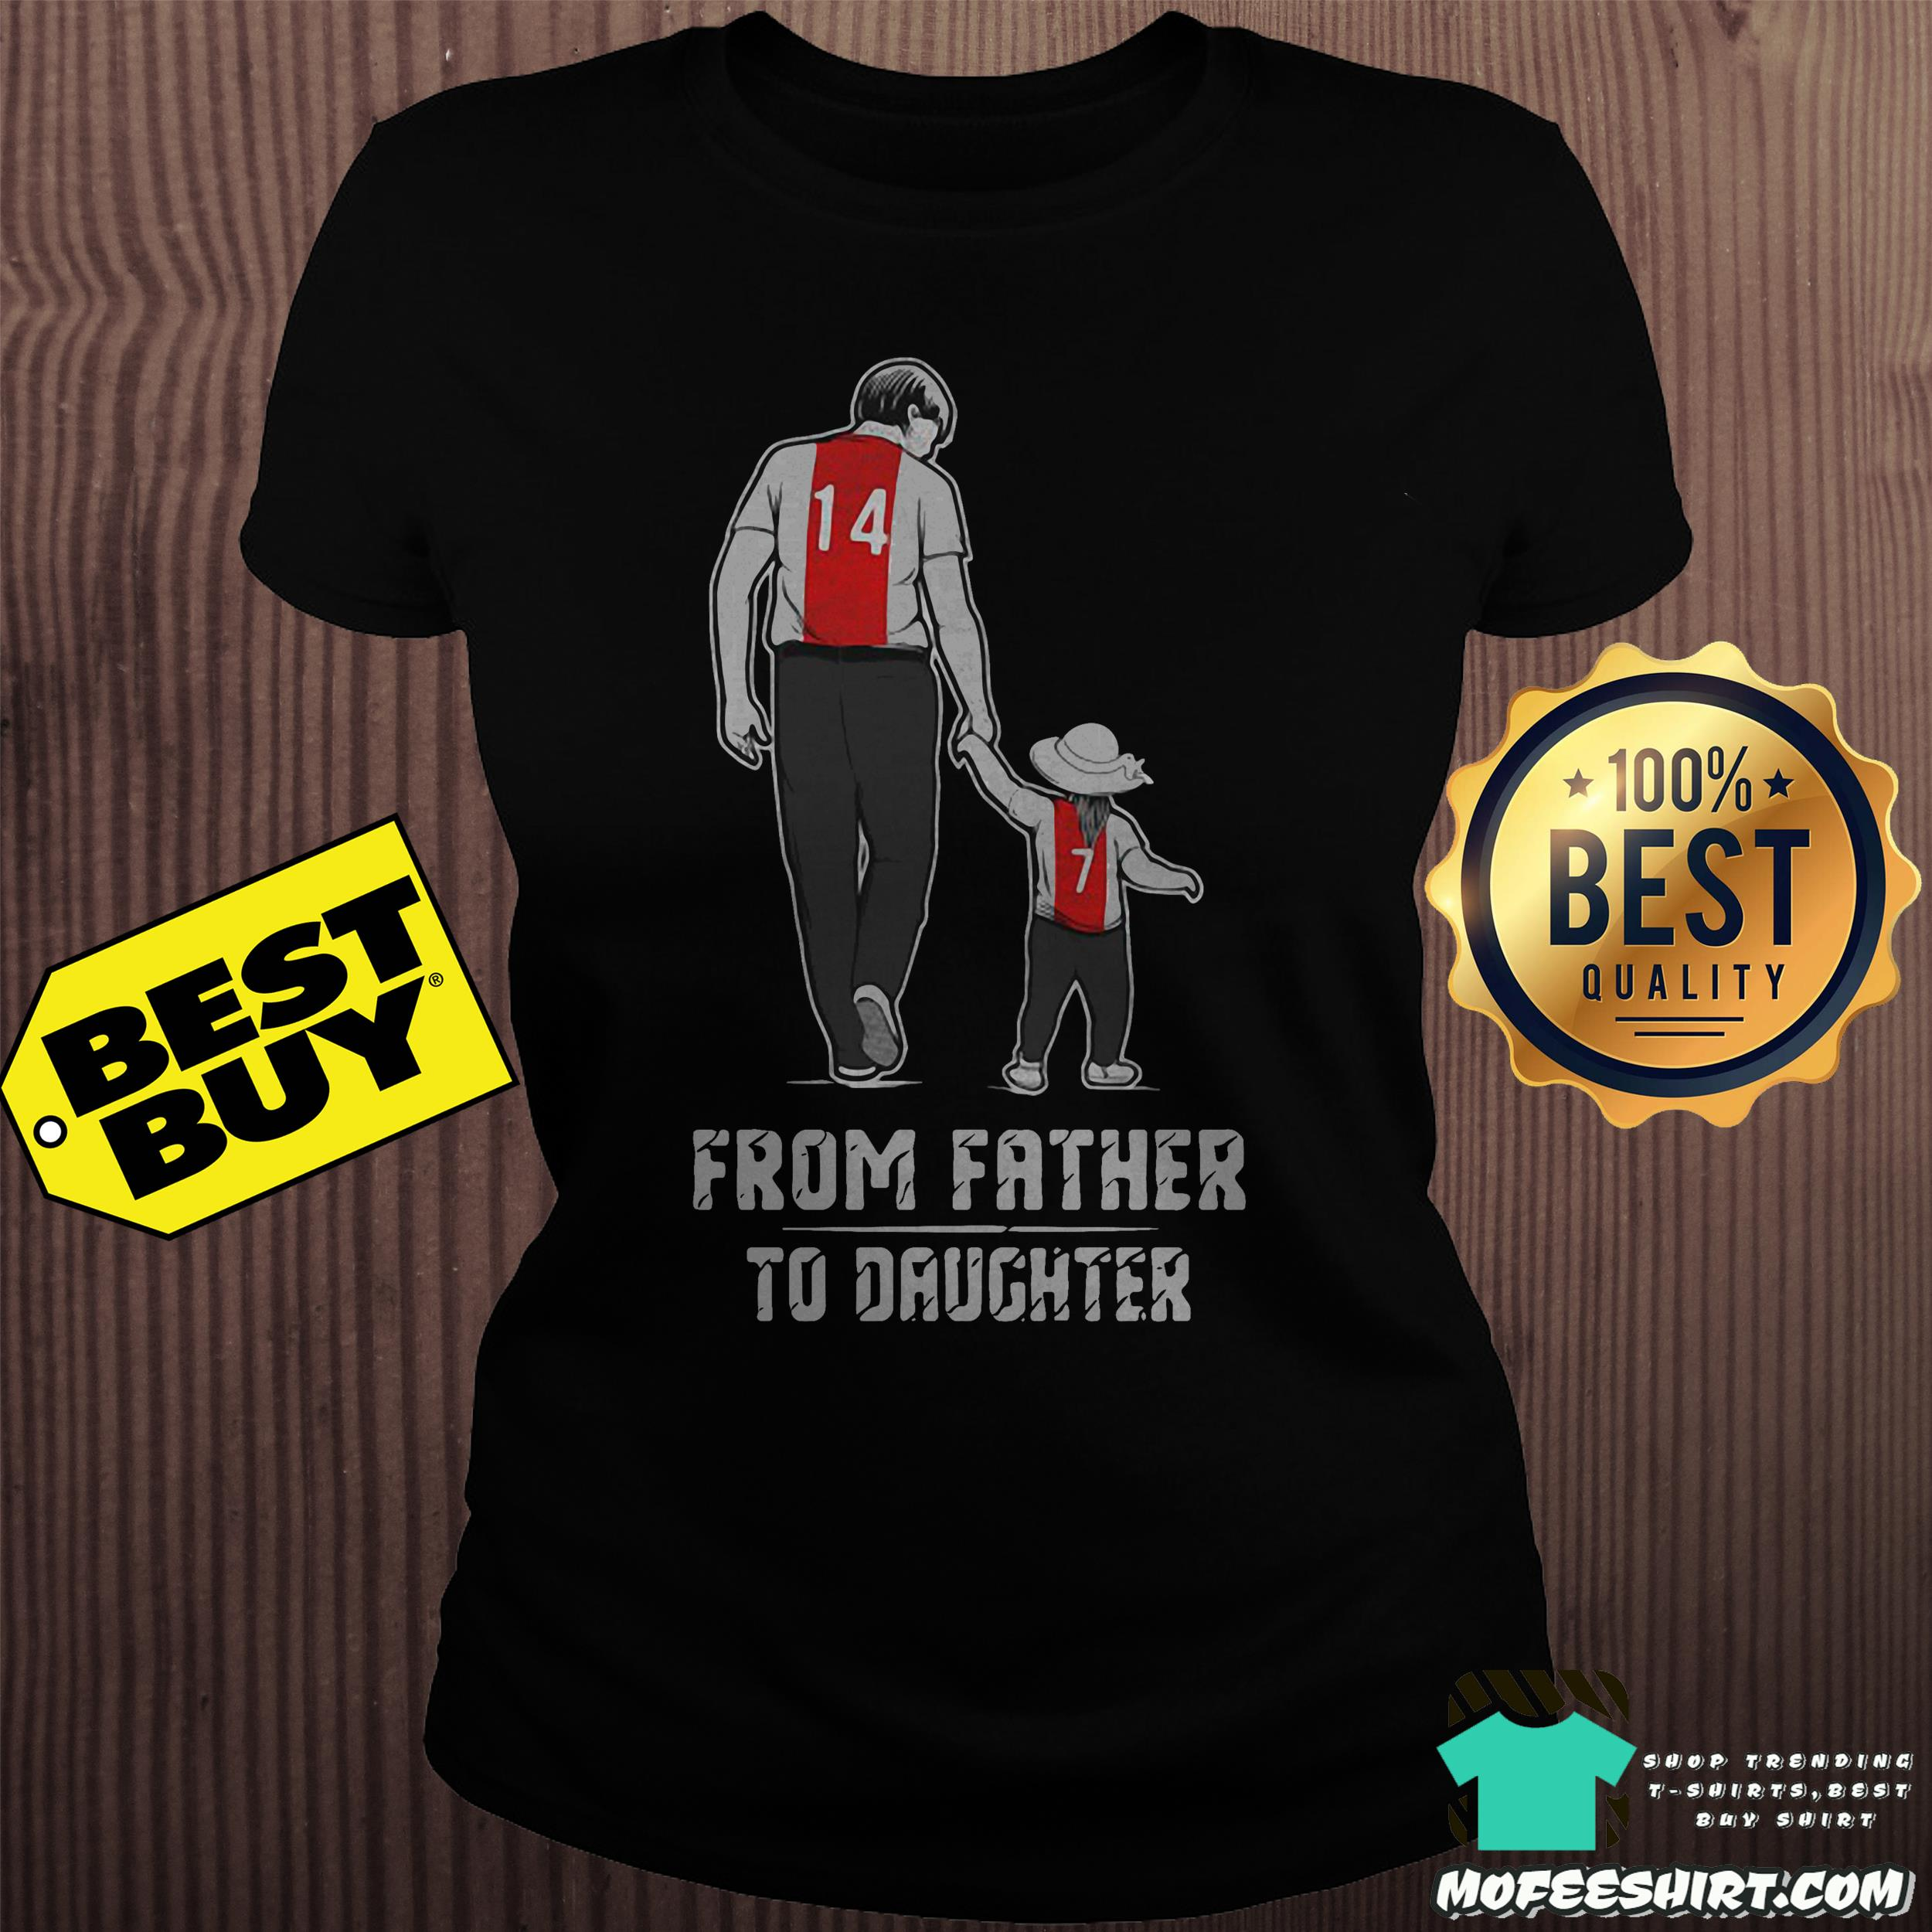 From father to daughter ladies tee